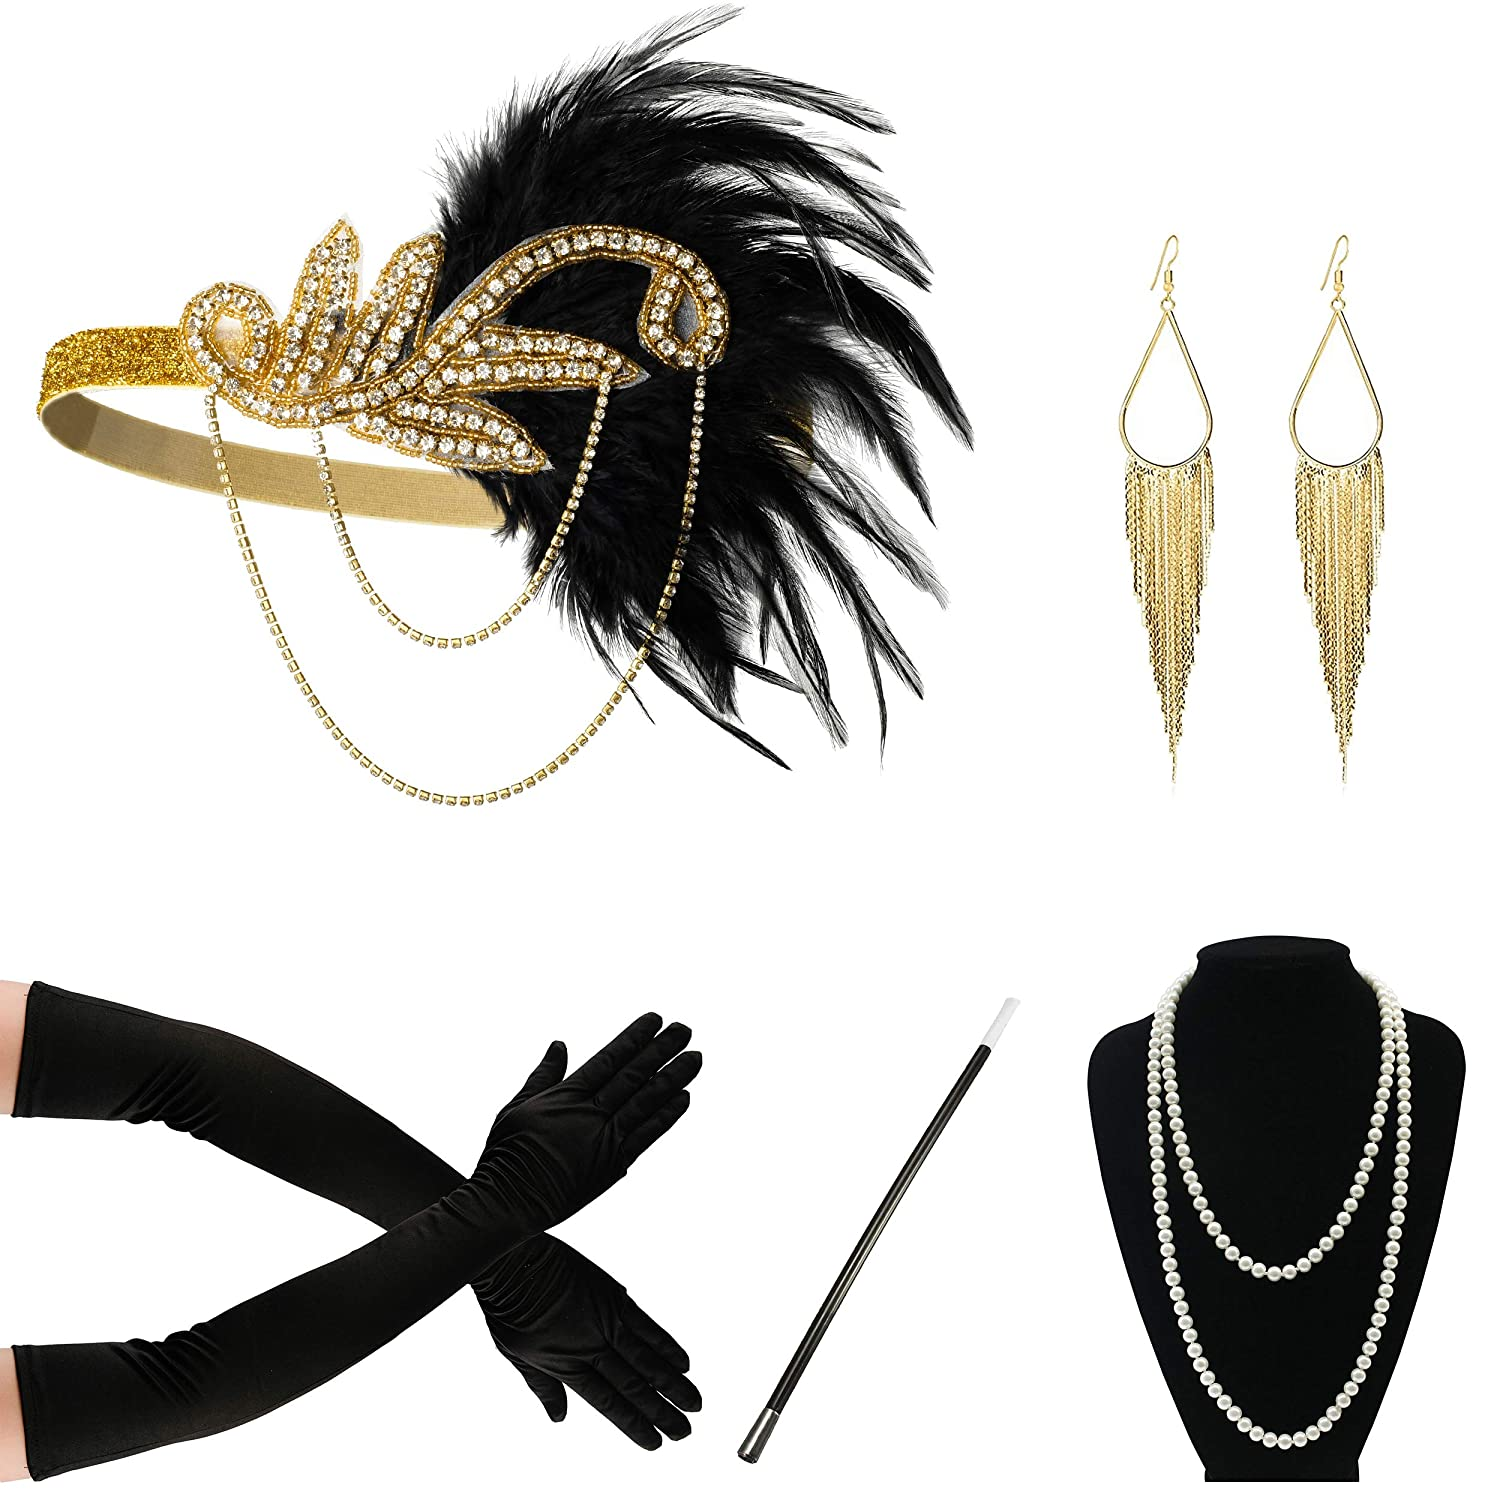 1920s Headband Pearl Necklace Gloves Fancy Dress Accessories Flapper Costume Set FEIBAO